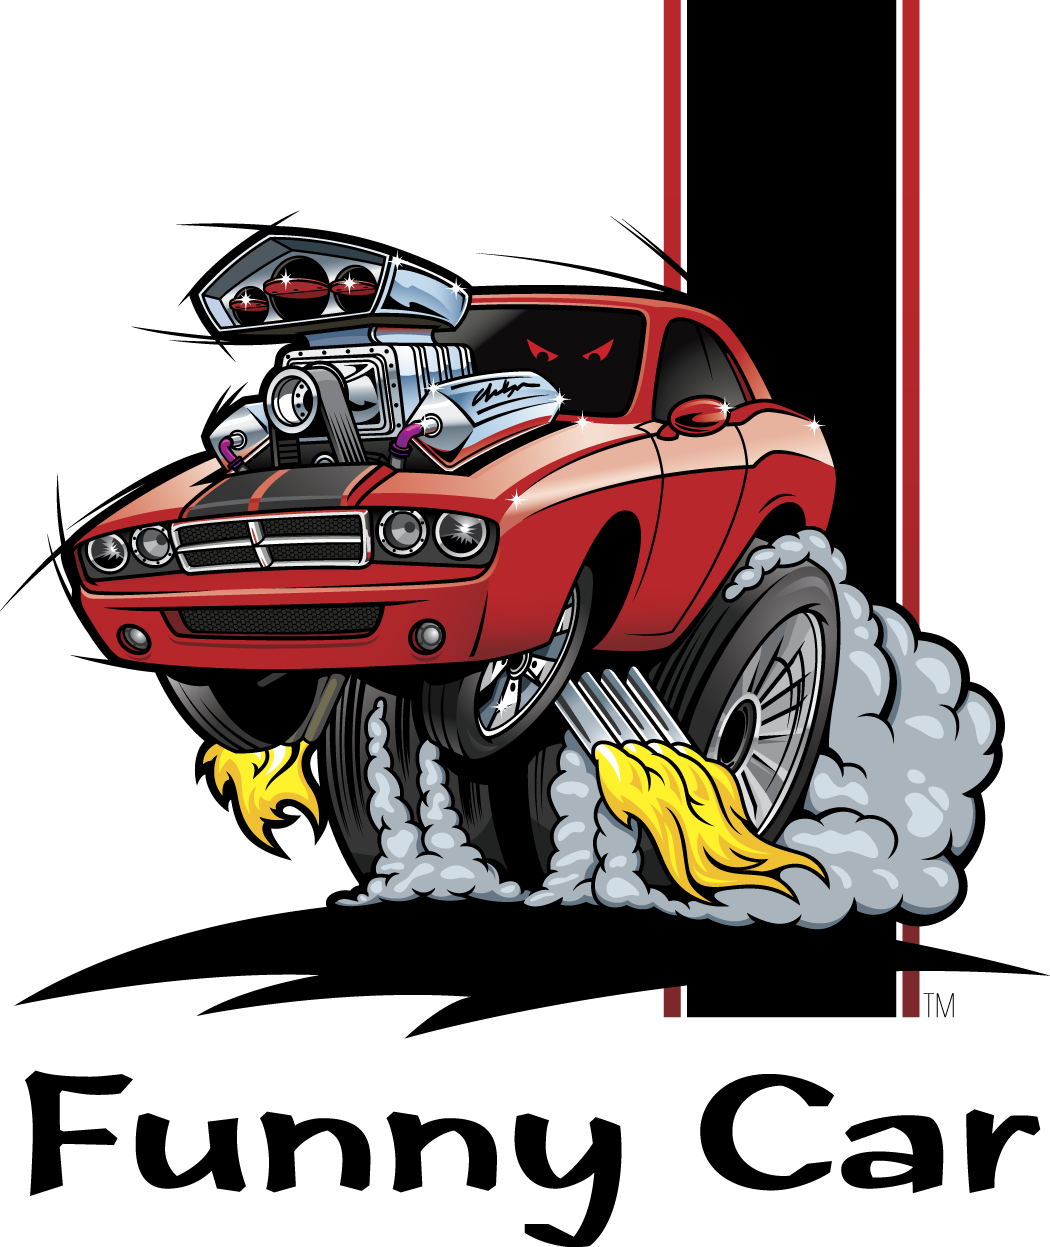 Funny Design Car Toon Free PPT Backgrounds for your ... |Funny Car Design